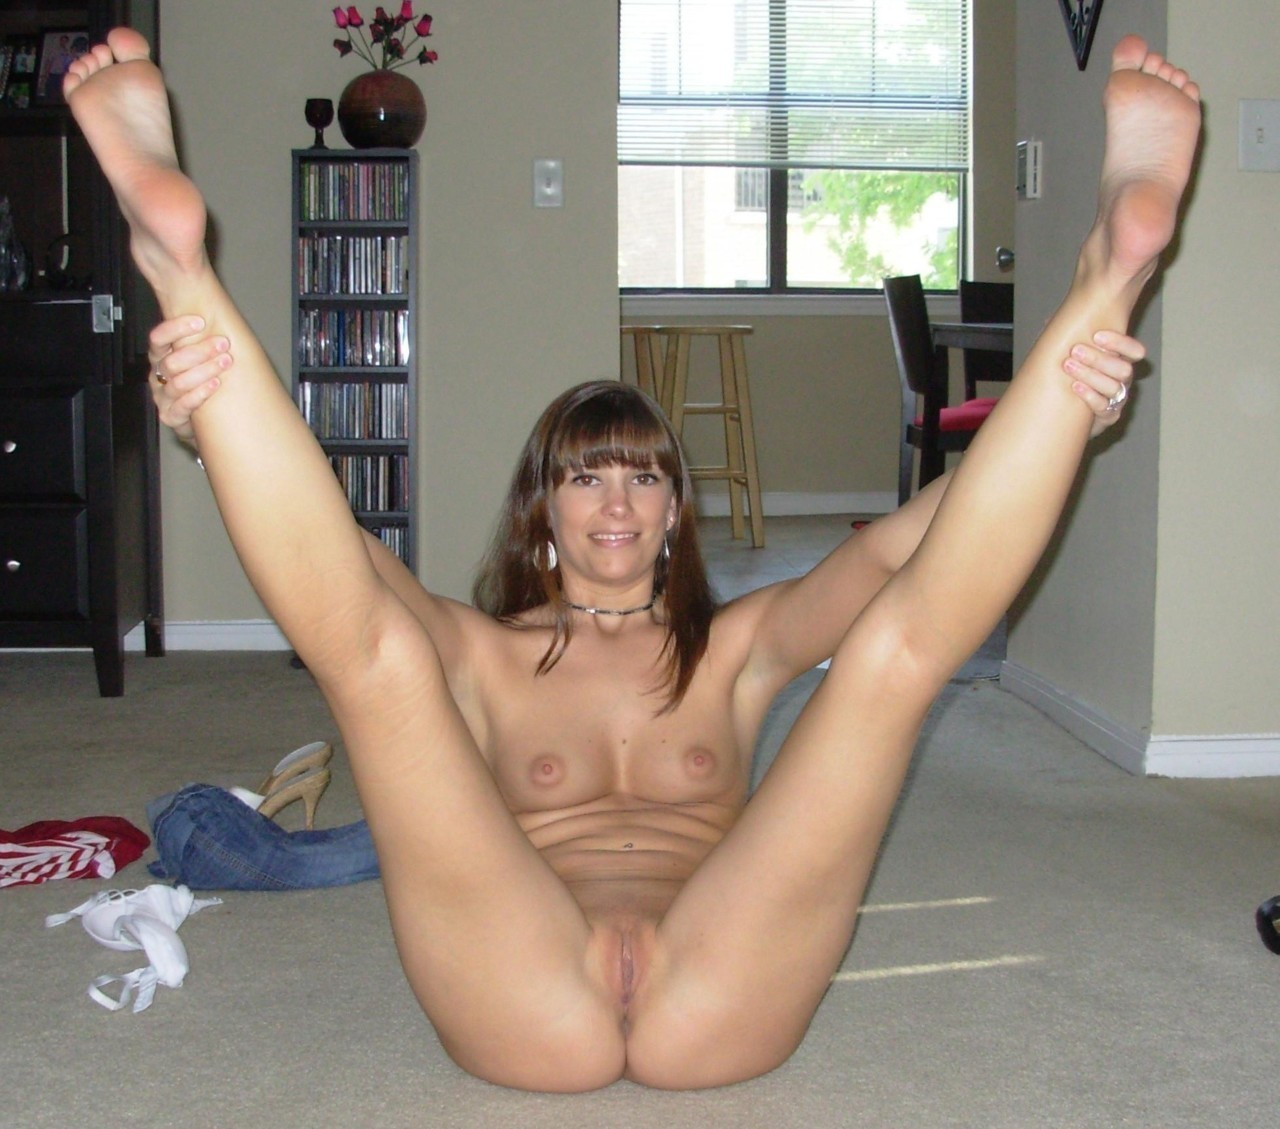 My mature wife nude and legs spread